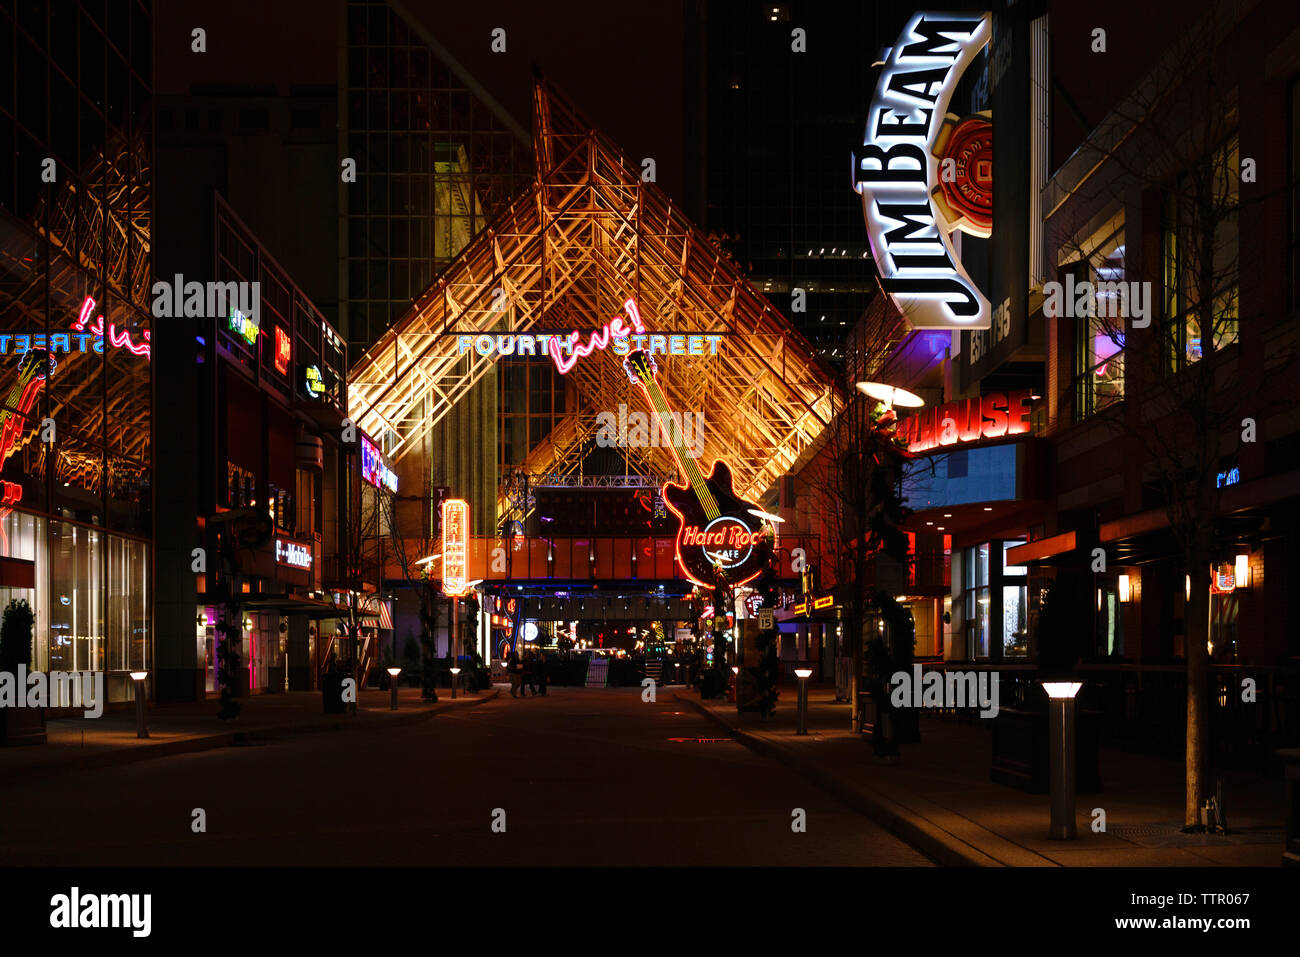 fourth-street-live!-a-louisville-kentucky-dining-and-entertainment-destination-on-the-famous-bourbon-trail-TTR067.jpg